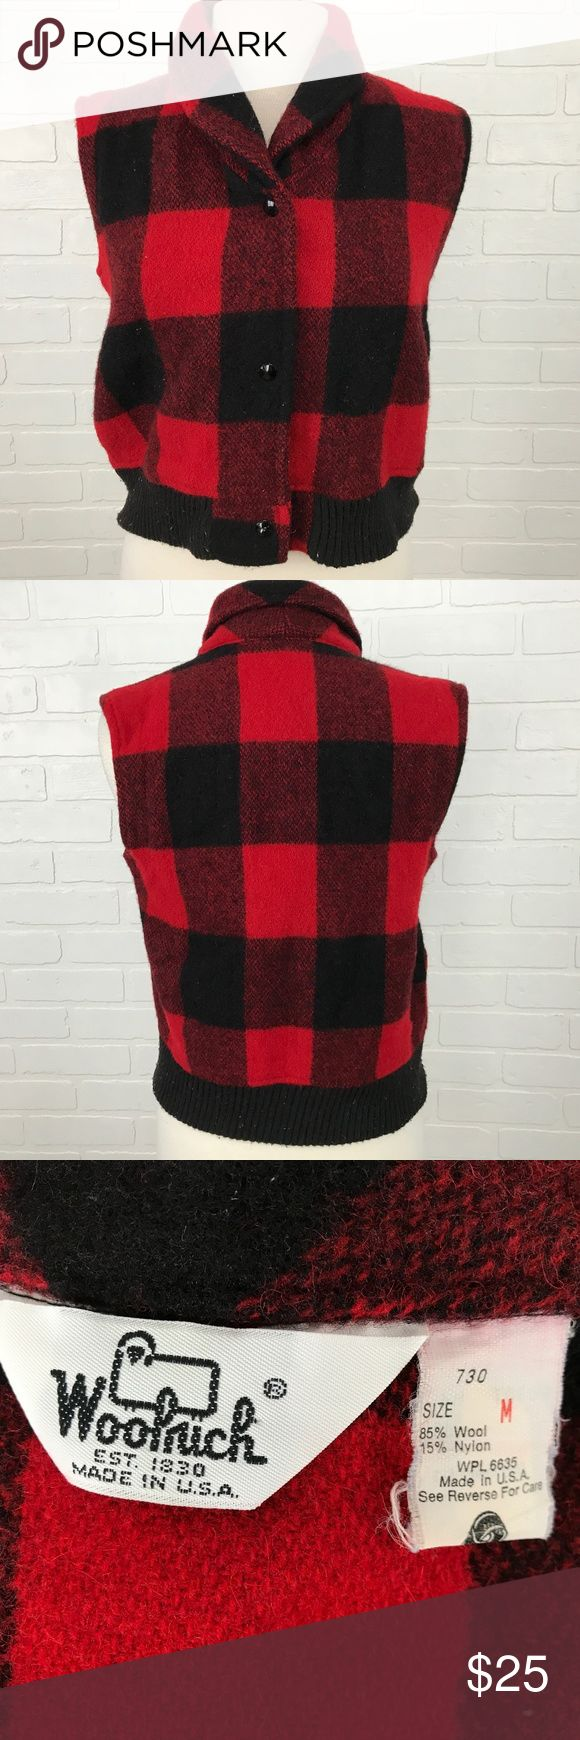 Red Black Plaid Vest Woolrich Vest Women's Size M BRAND                    :Woolrich					 SIZE	                 :Women's Medium STYLE	                 :Vest COLOR	                 :Red Black MATERIAL              :85% Wool 15% Nylon Inventory                : MQ96 B4 Woolrich Jackets & Coats Vests